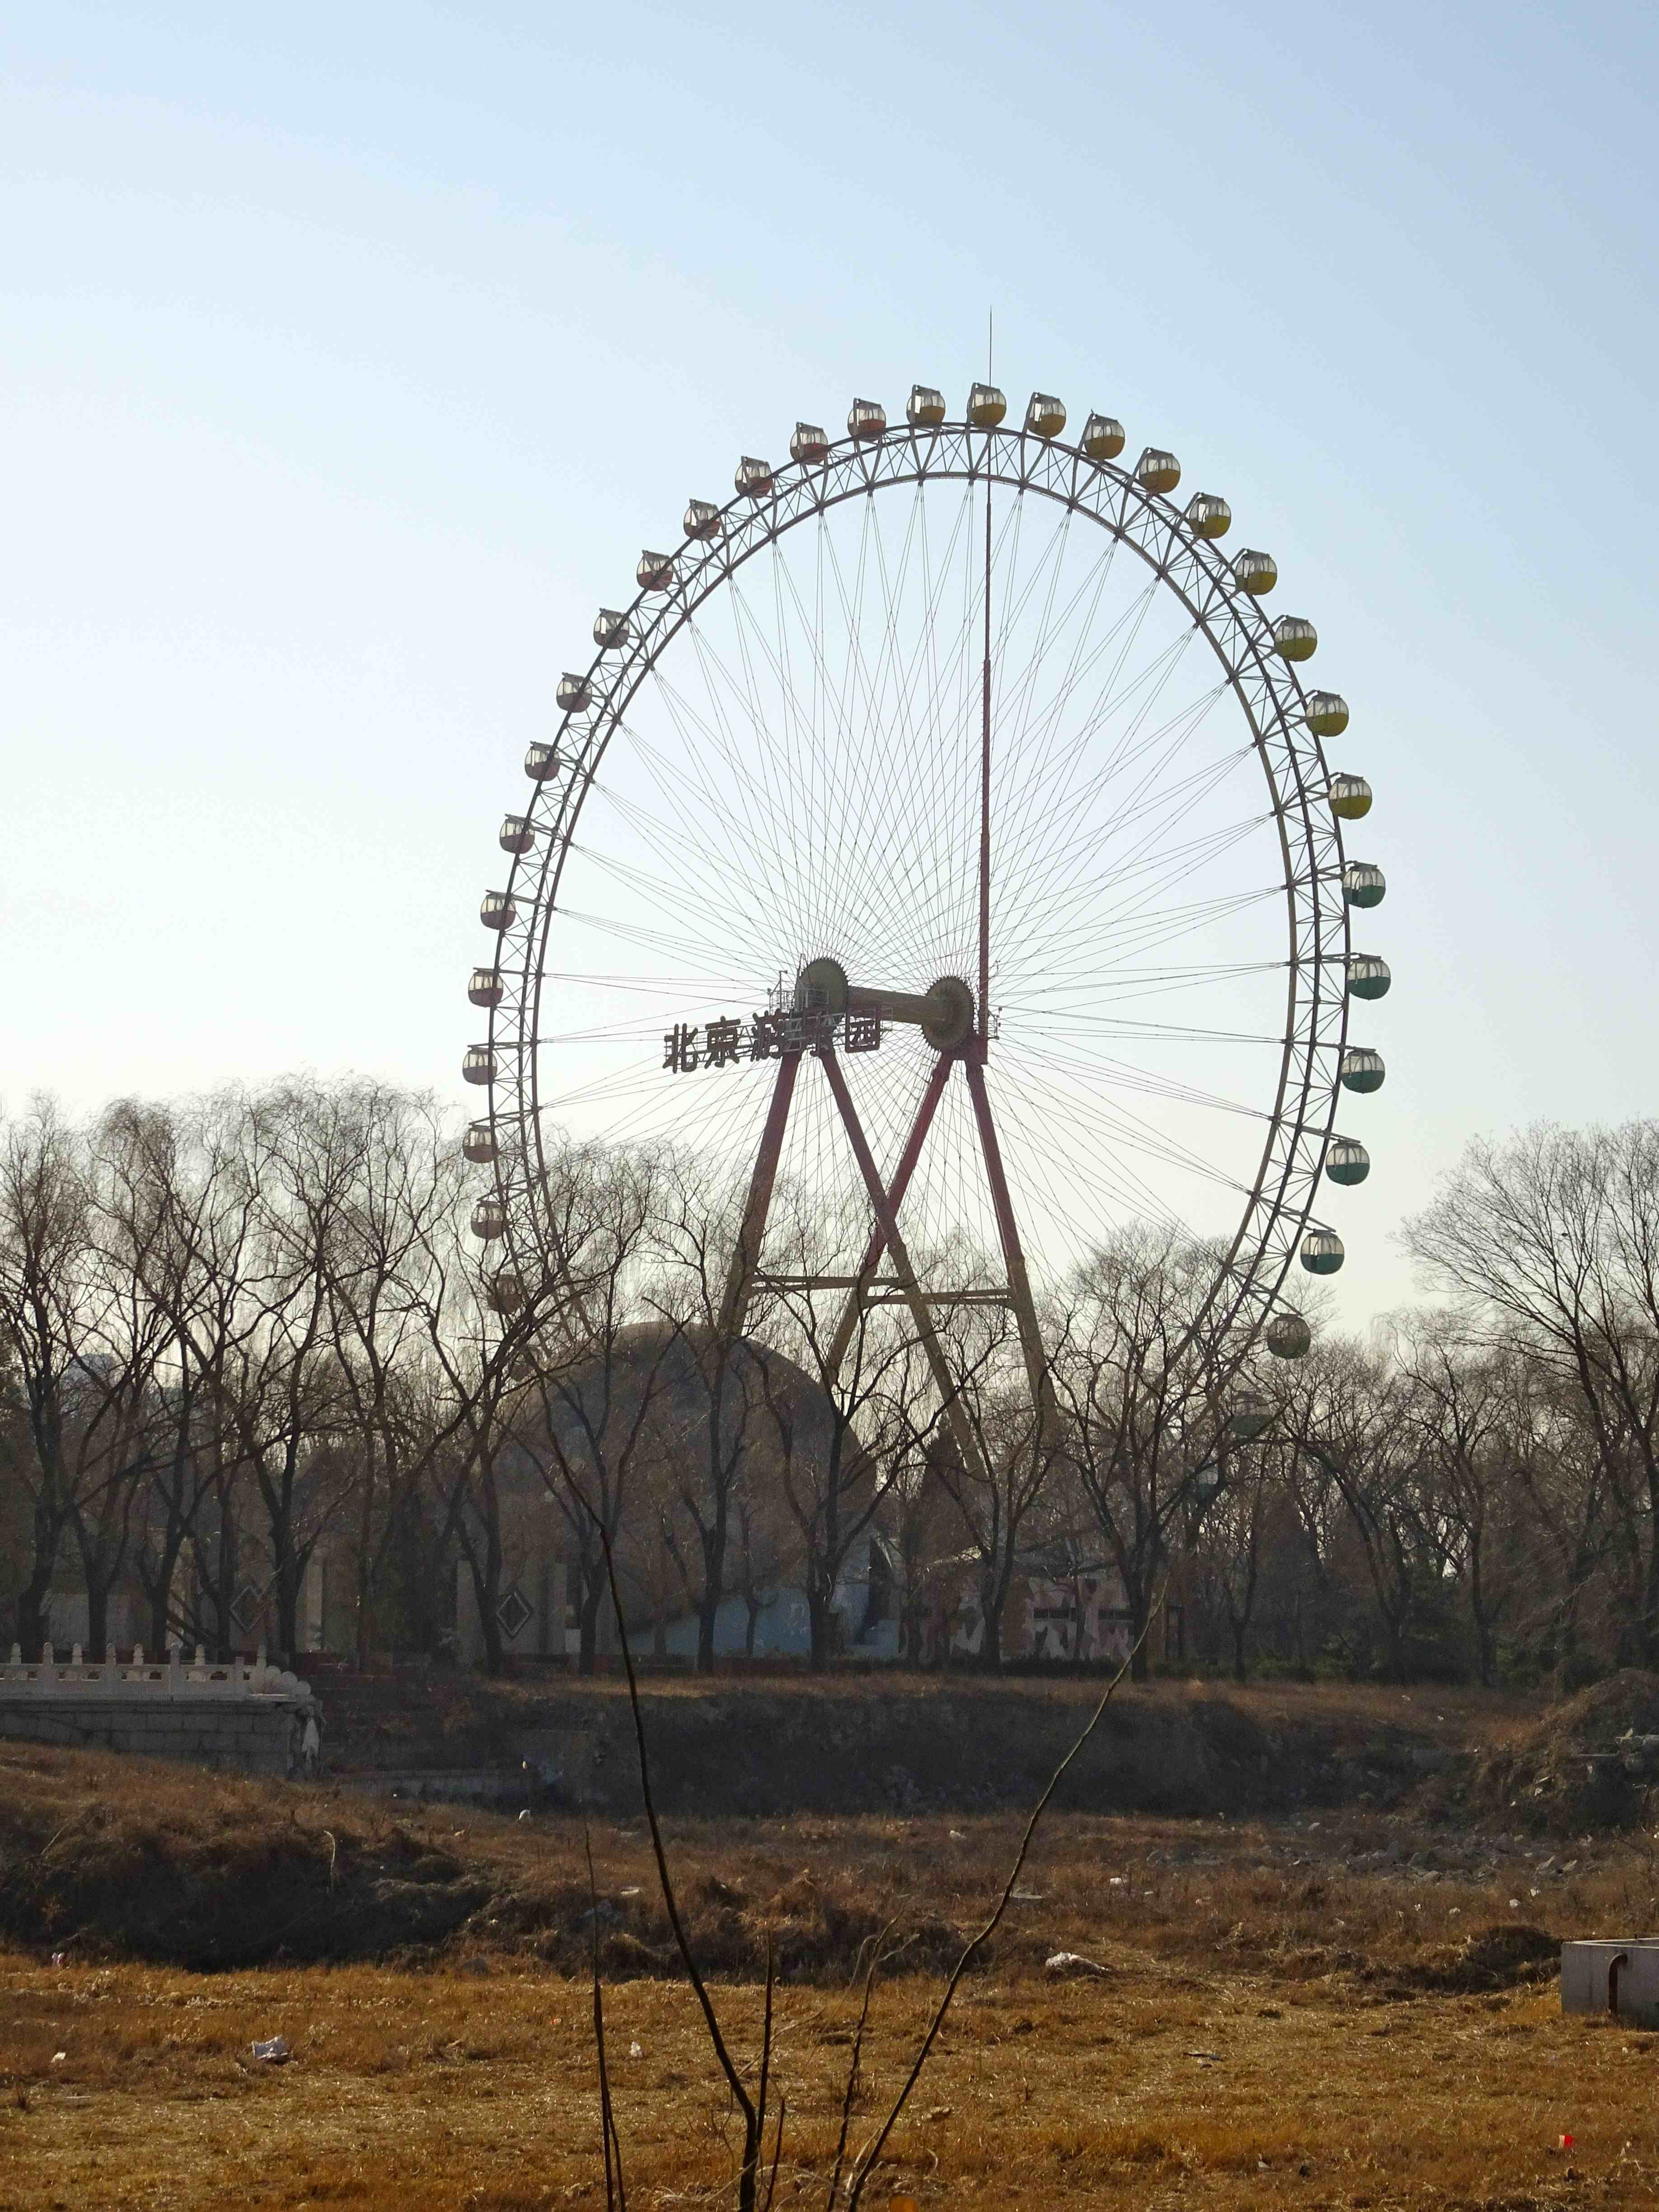 Beijing Amusement Park 北京游乐园 China S Forgotten Places And Urban Dystopias